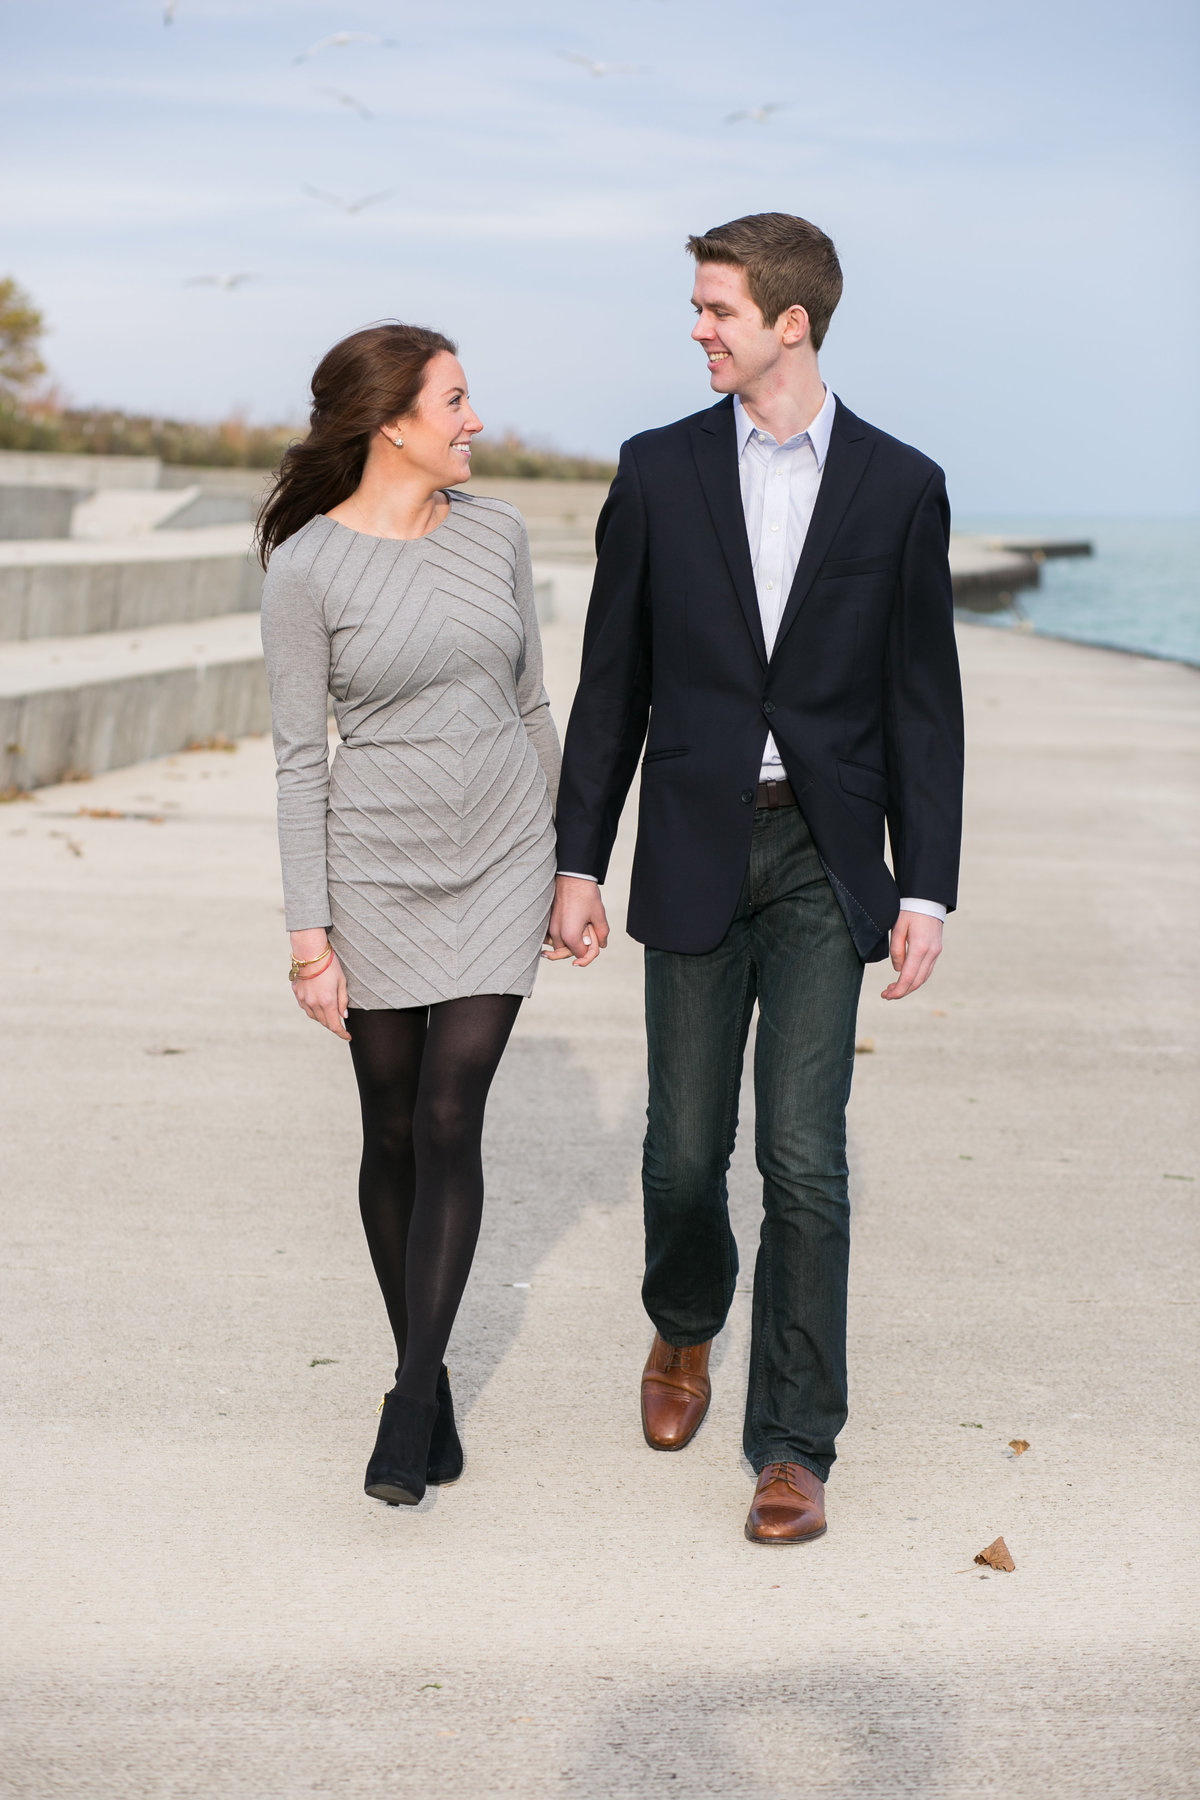 Montrose-Harbor-Engagement-08